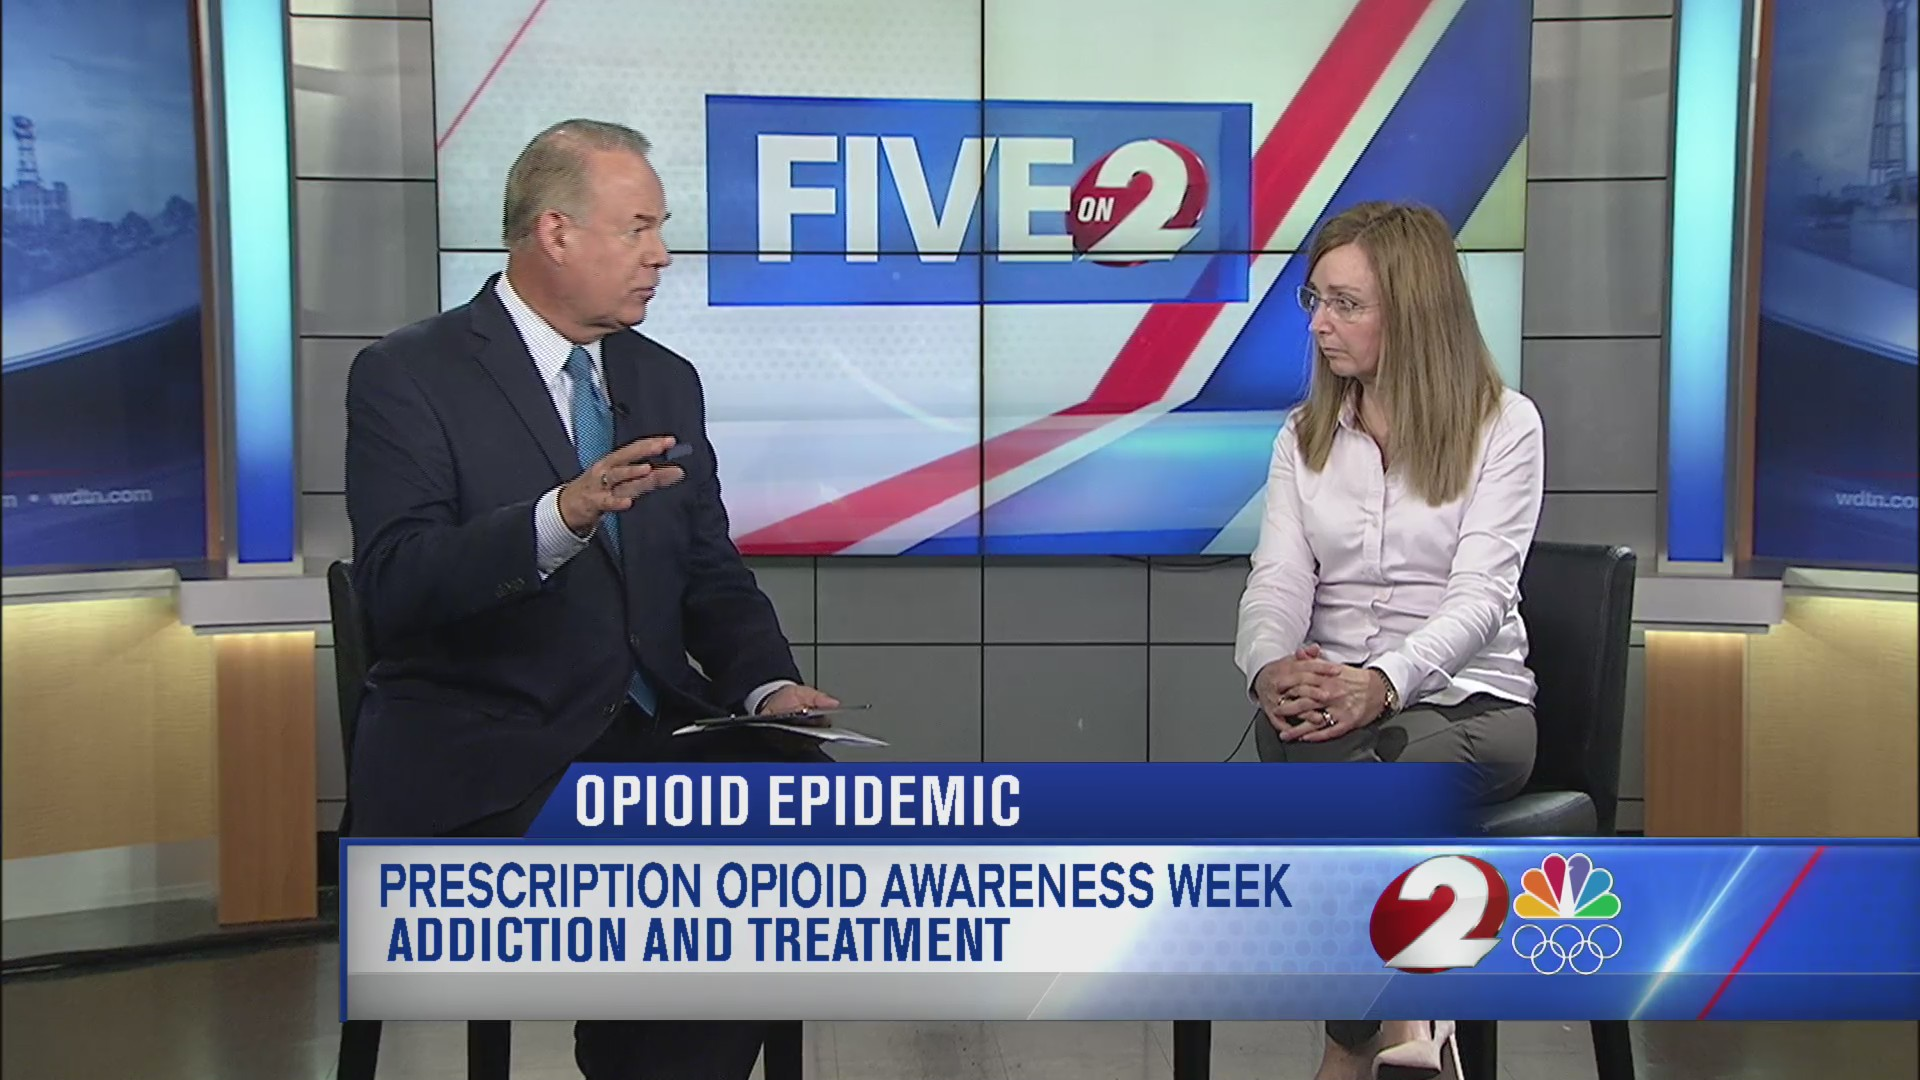 Prescription Opioid Awareness Week